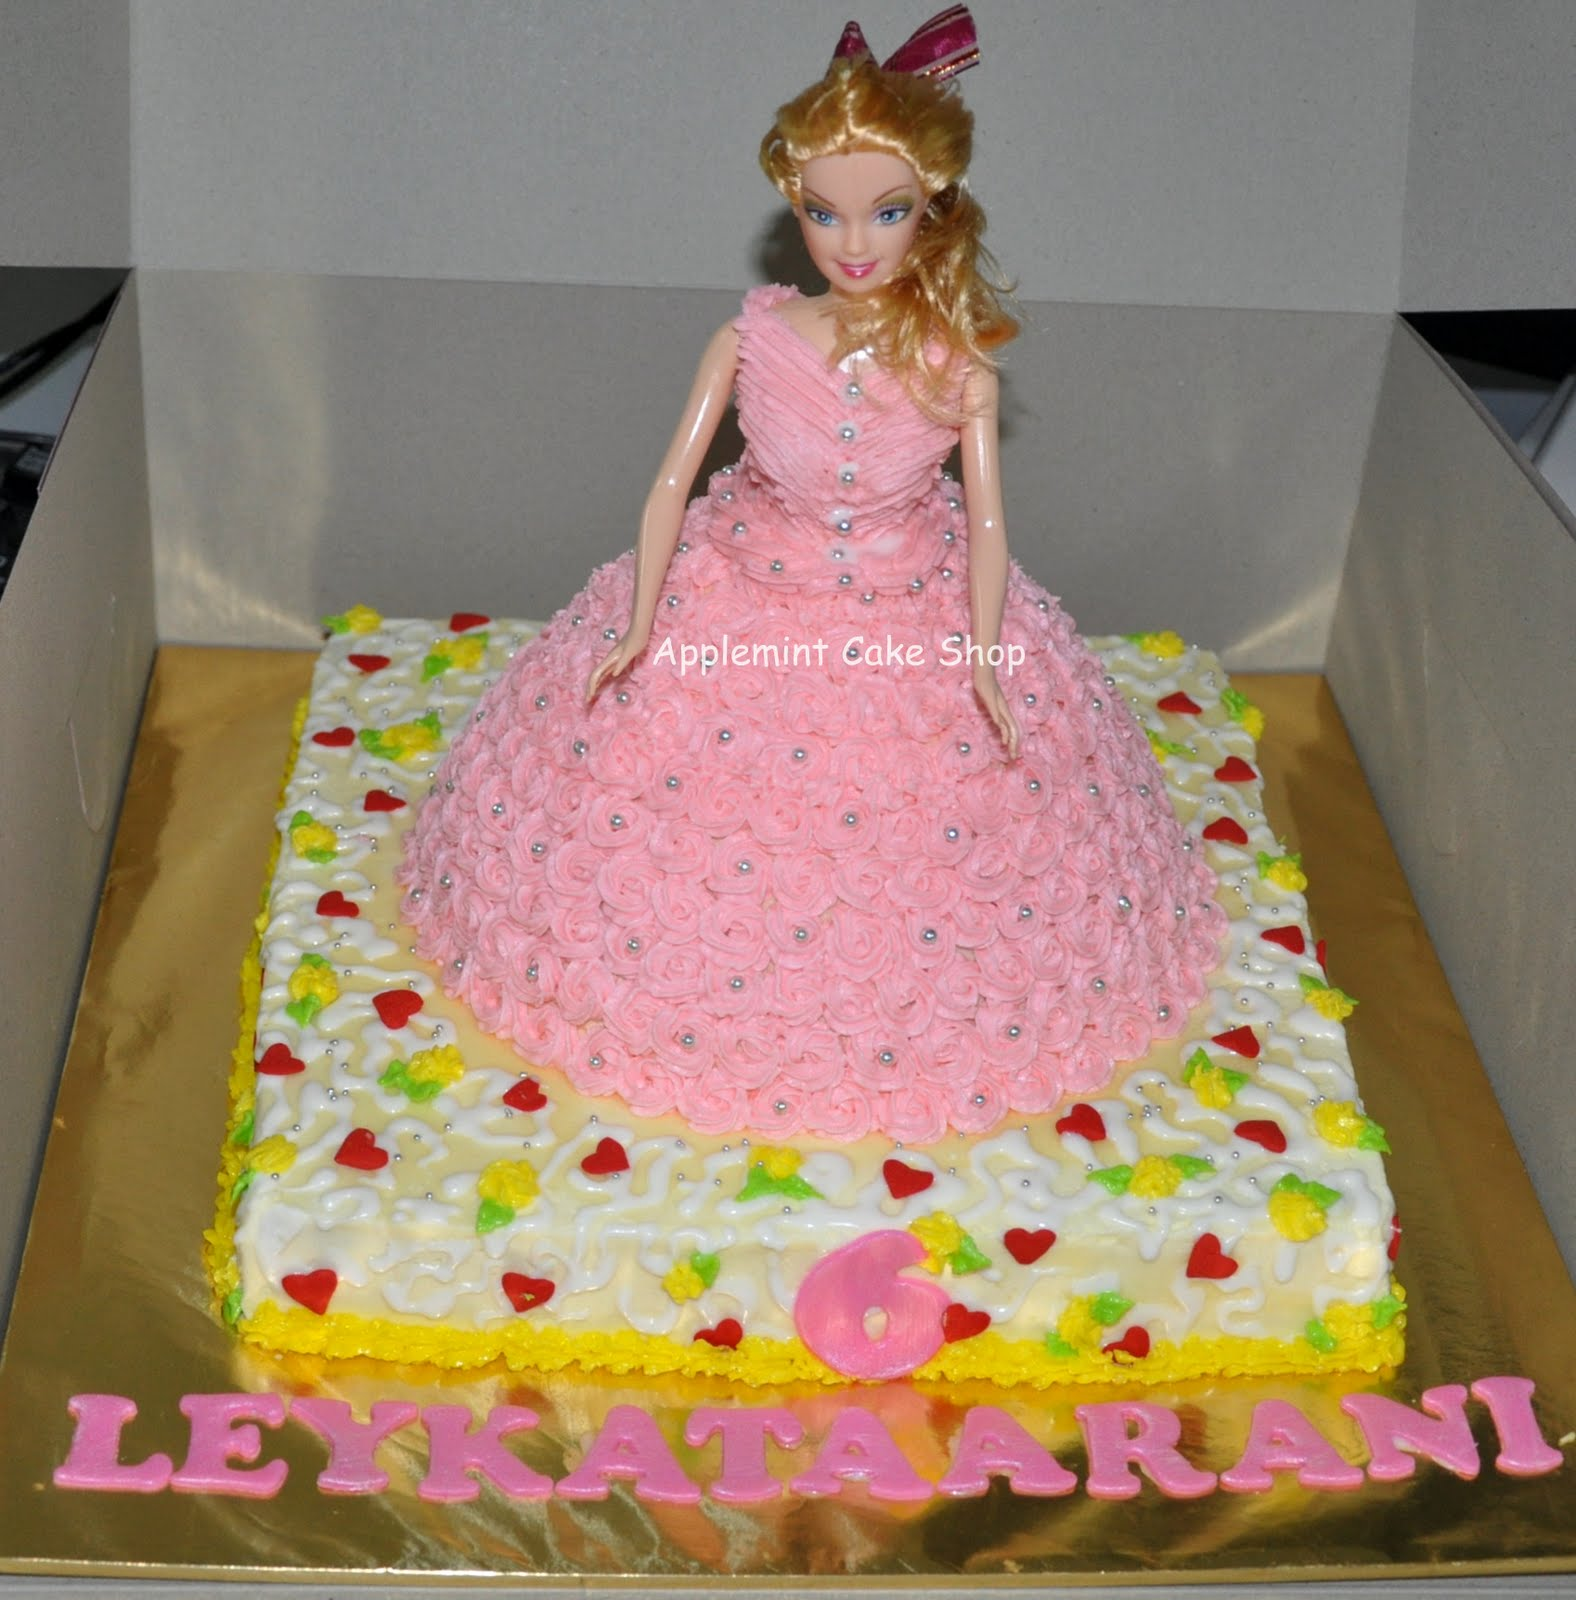 Doll Cake Images With Name : Applemint Cake Shop Ipoh: Vegan Doll cake